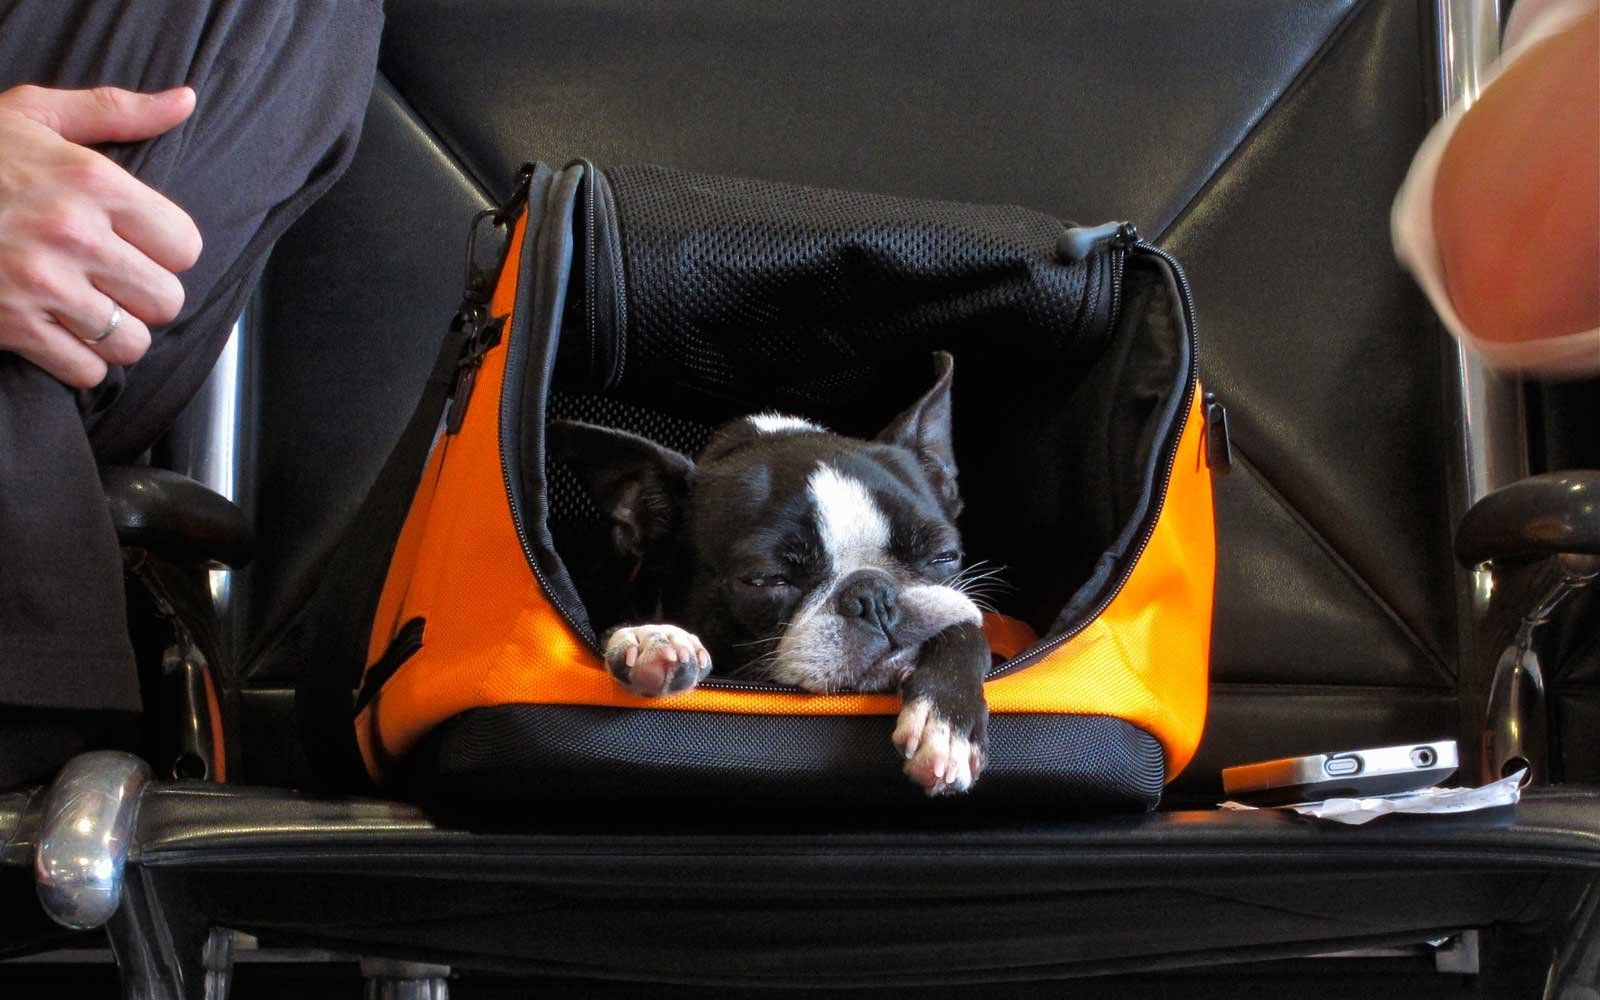 Southwest Airlines Just Overhauled Its Animal Policy